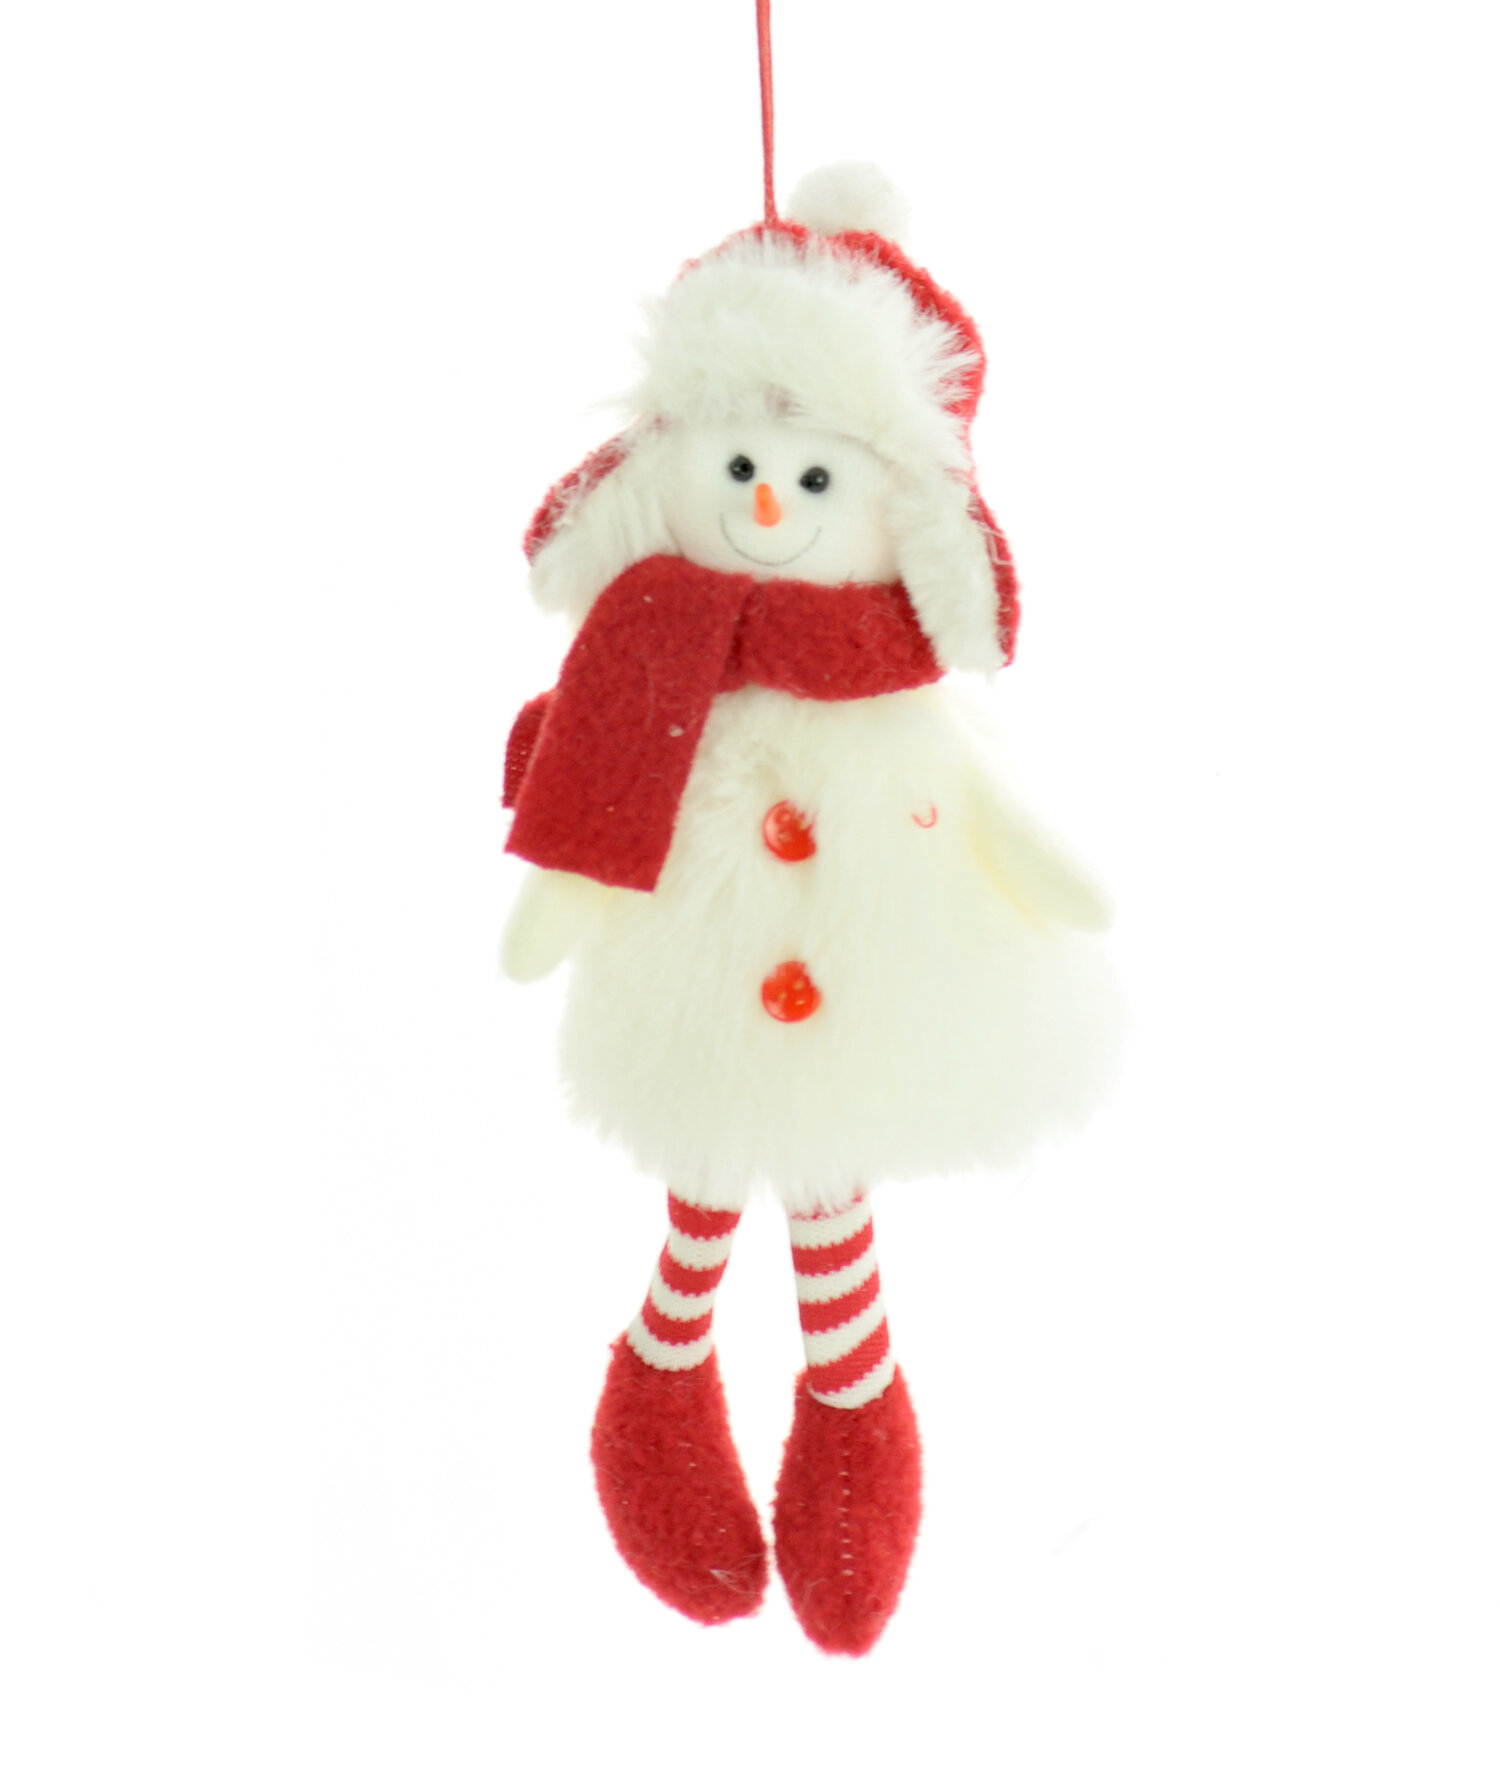 The Holiday Aisle Snowmen With Stripped Socks Hanging Figurine Ornament Wayfair